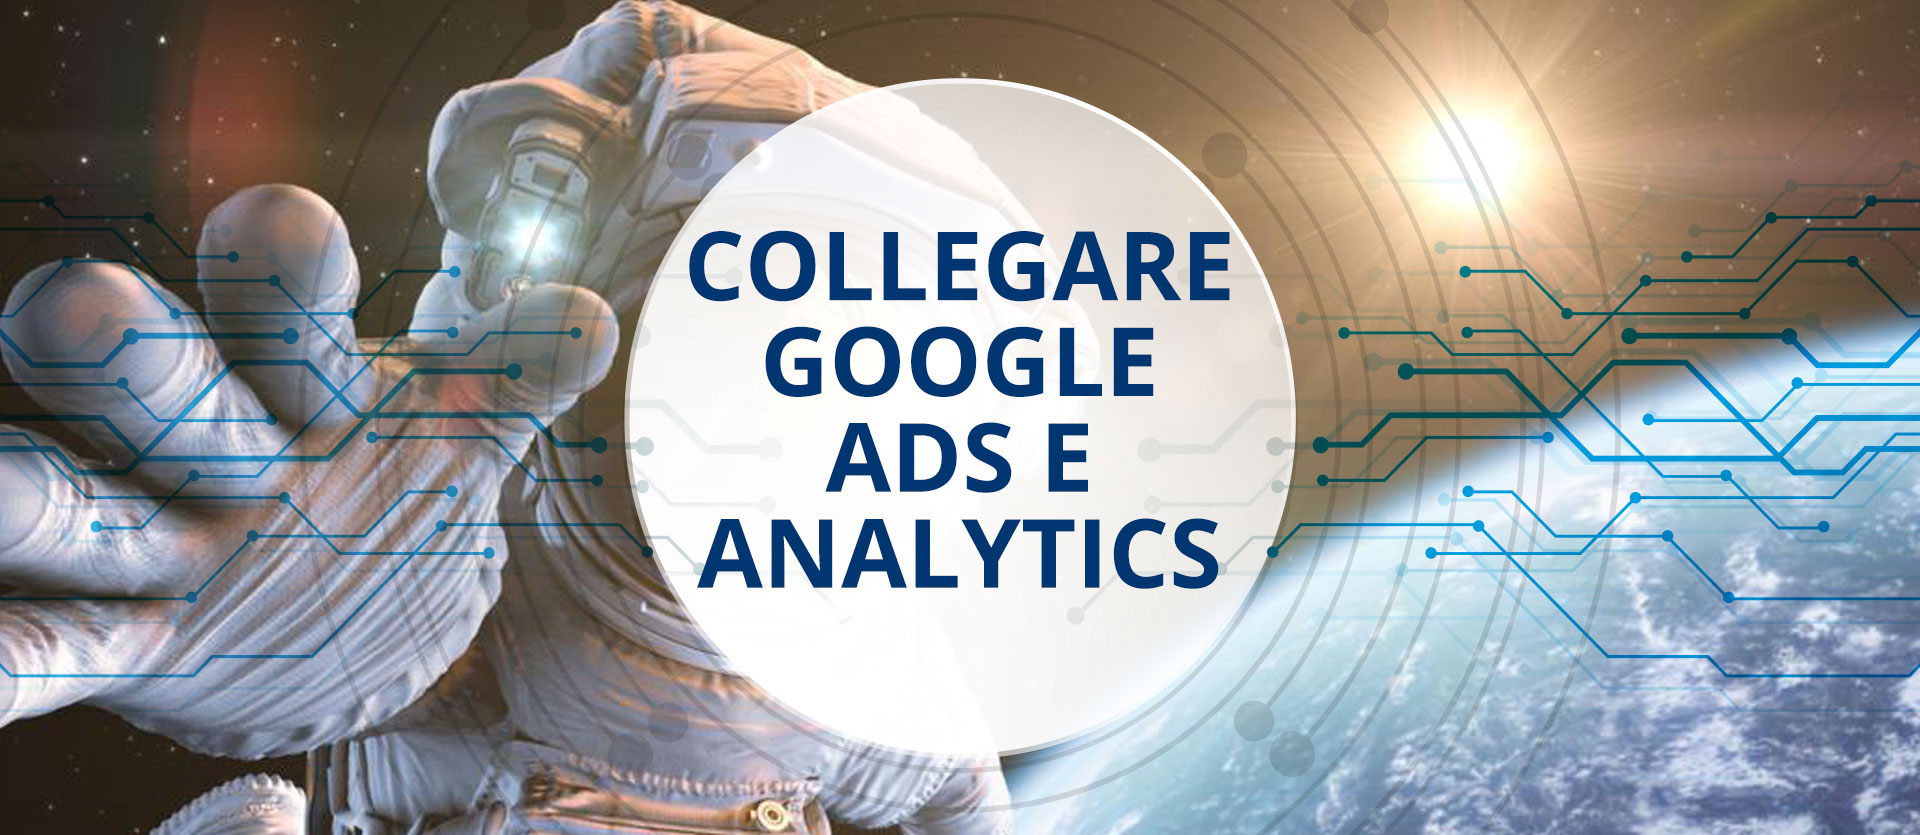 collegare-google-ads-e-analytics